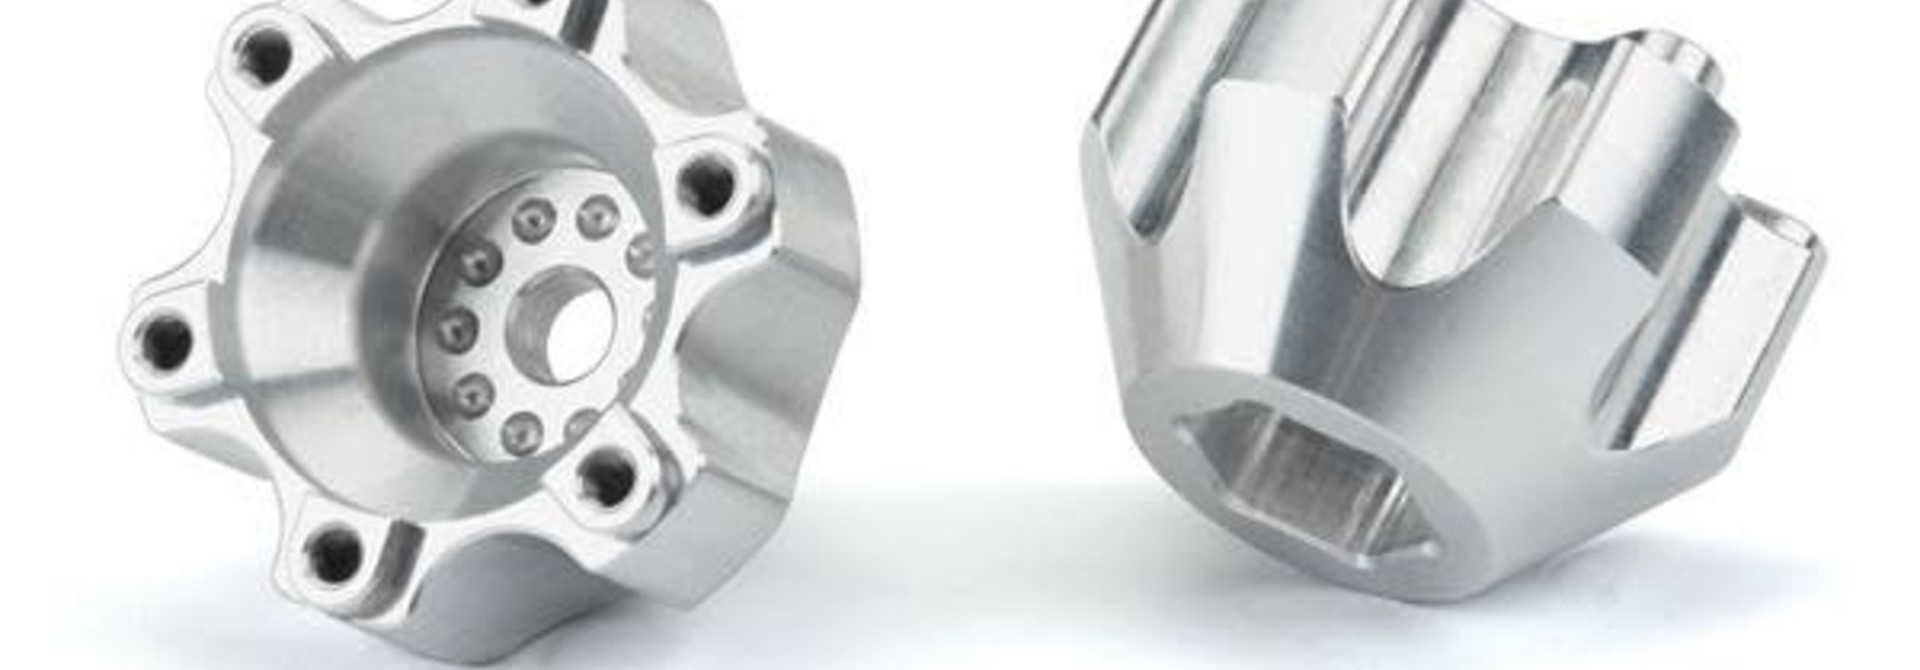 6x30 to 12mm Aluminum Hex Adapters (Wide)